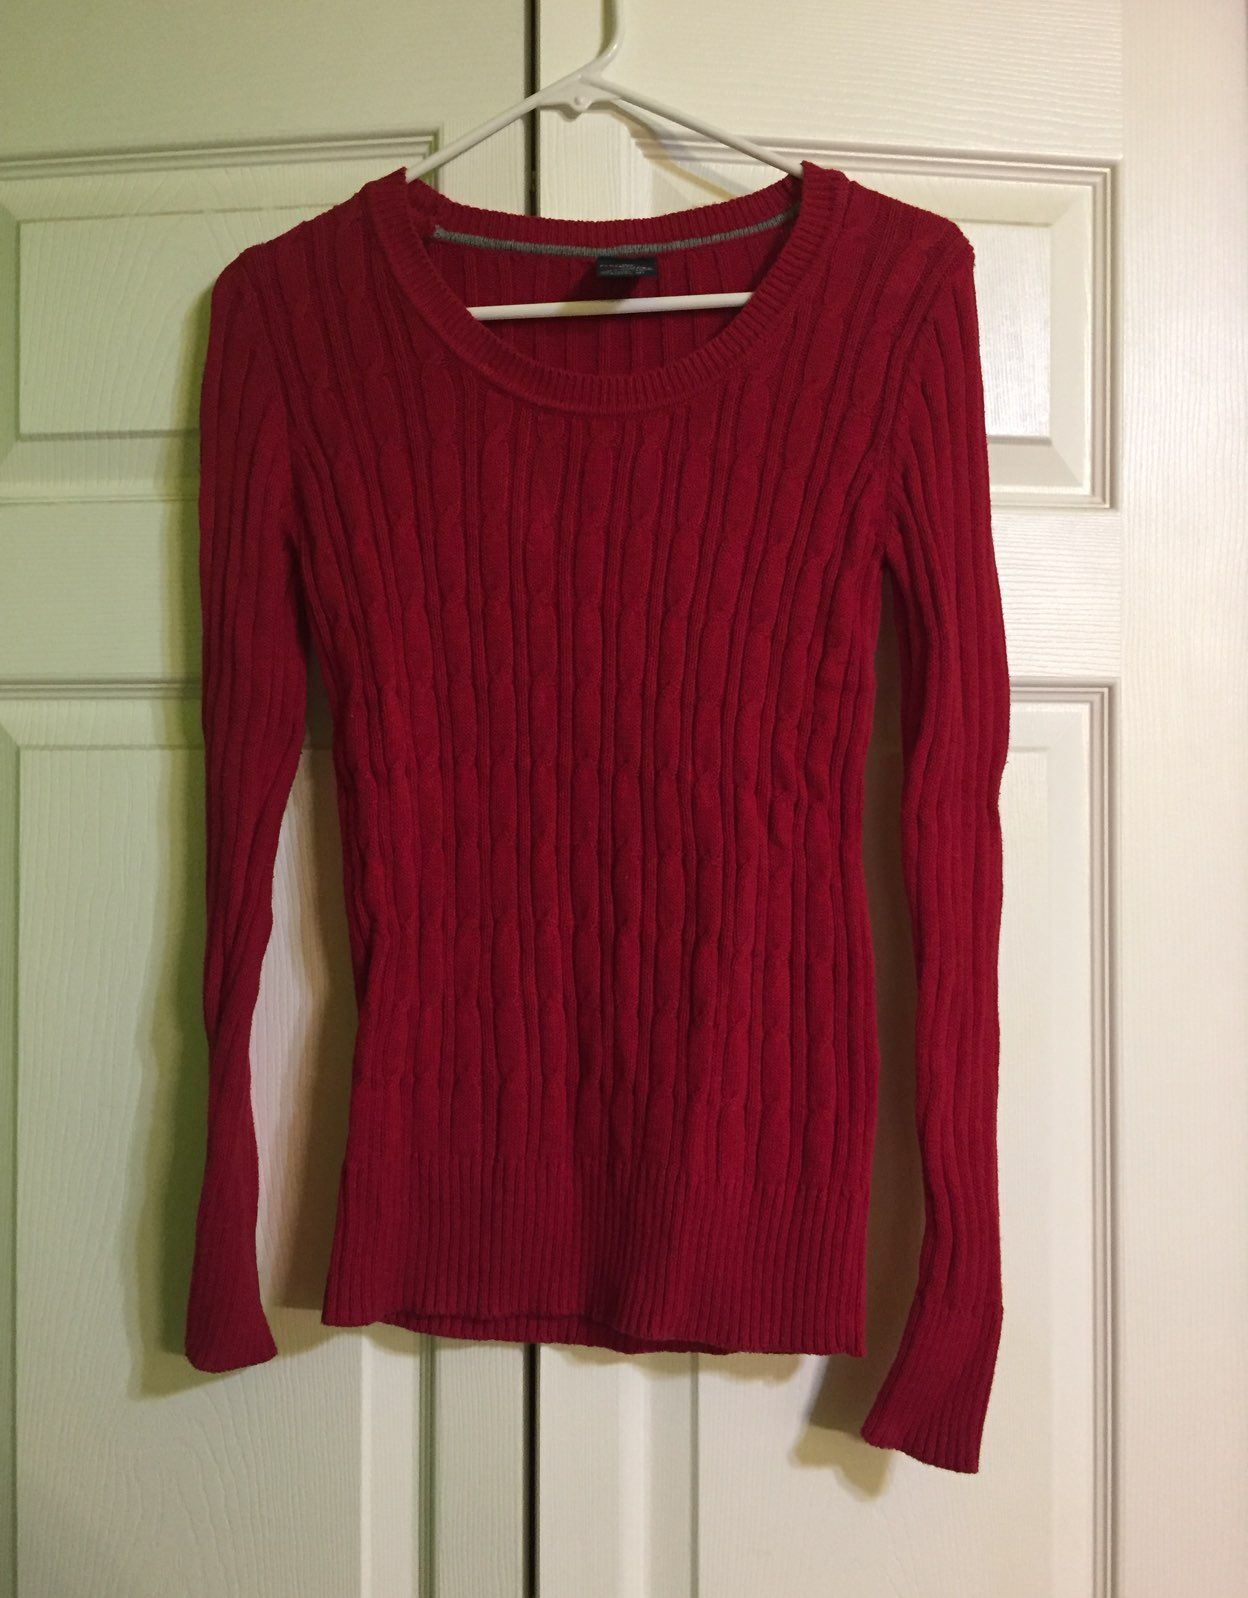 Red Sweater - Mercari: BUY & SELL THINGS YOU LOVE